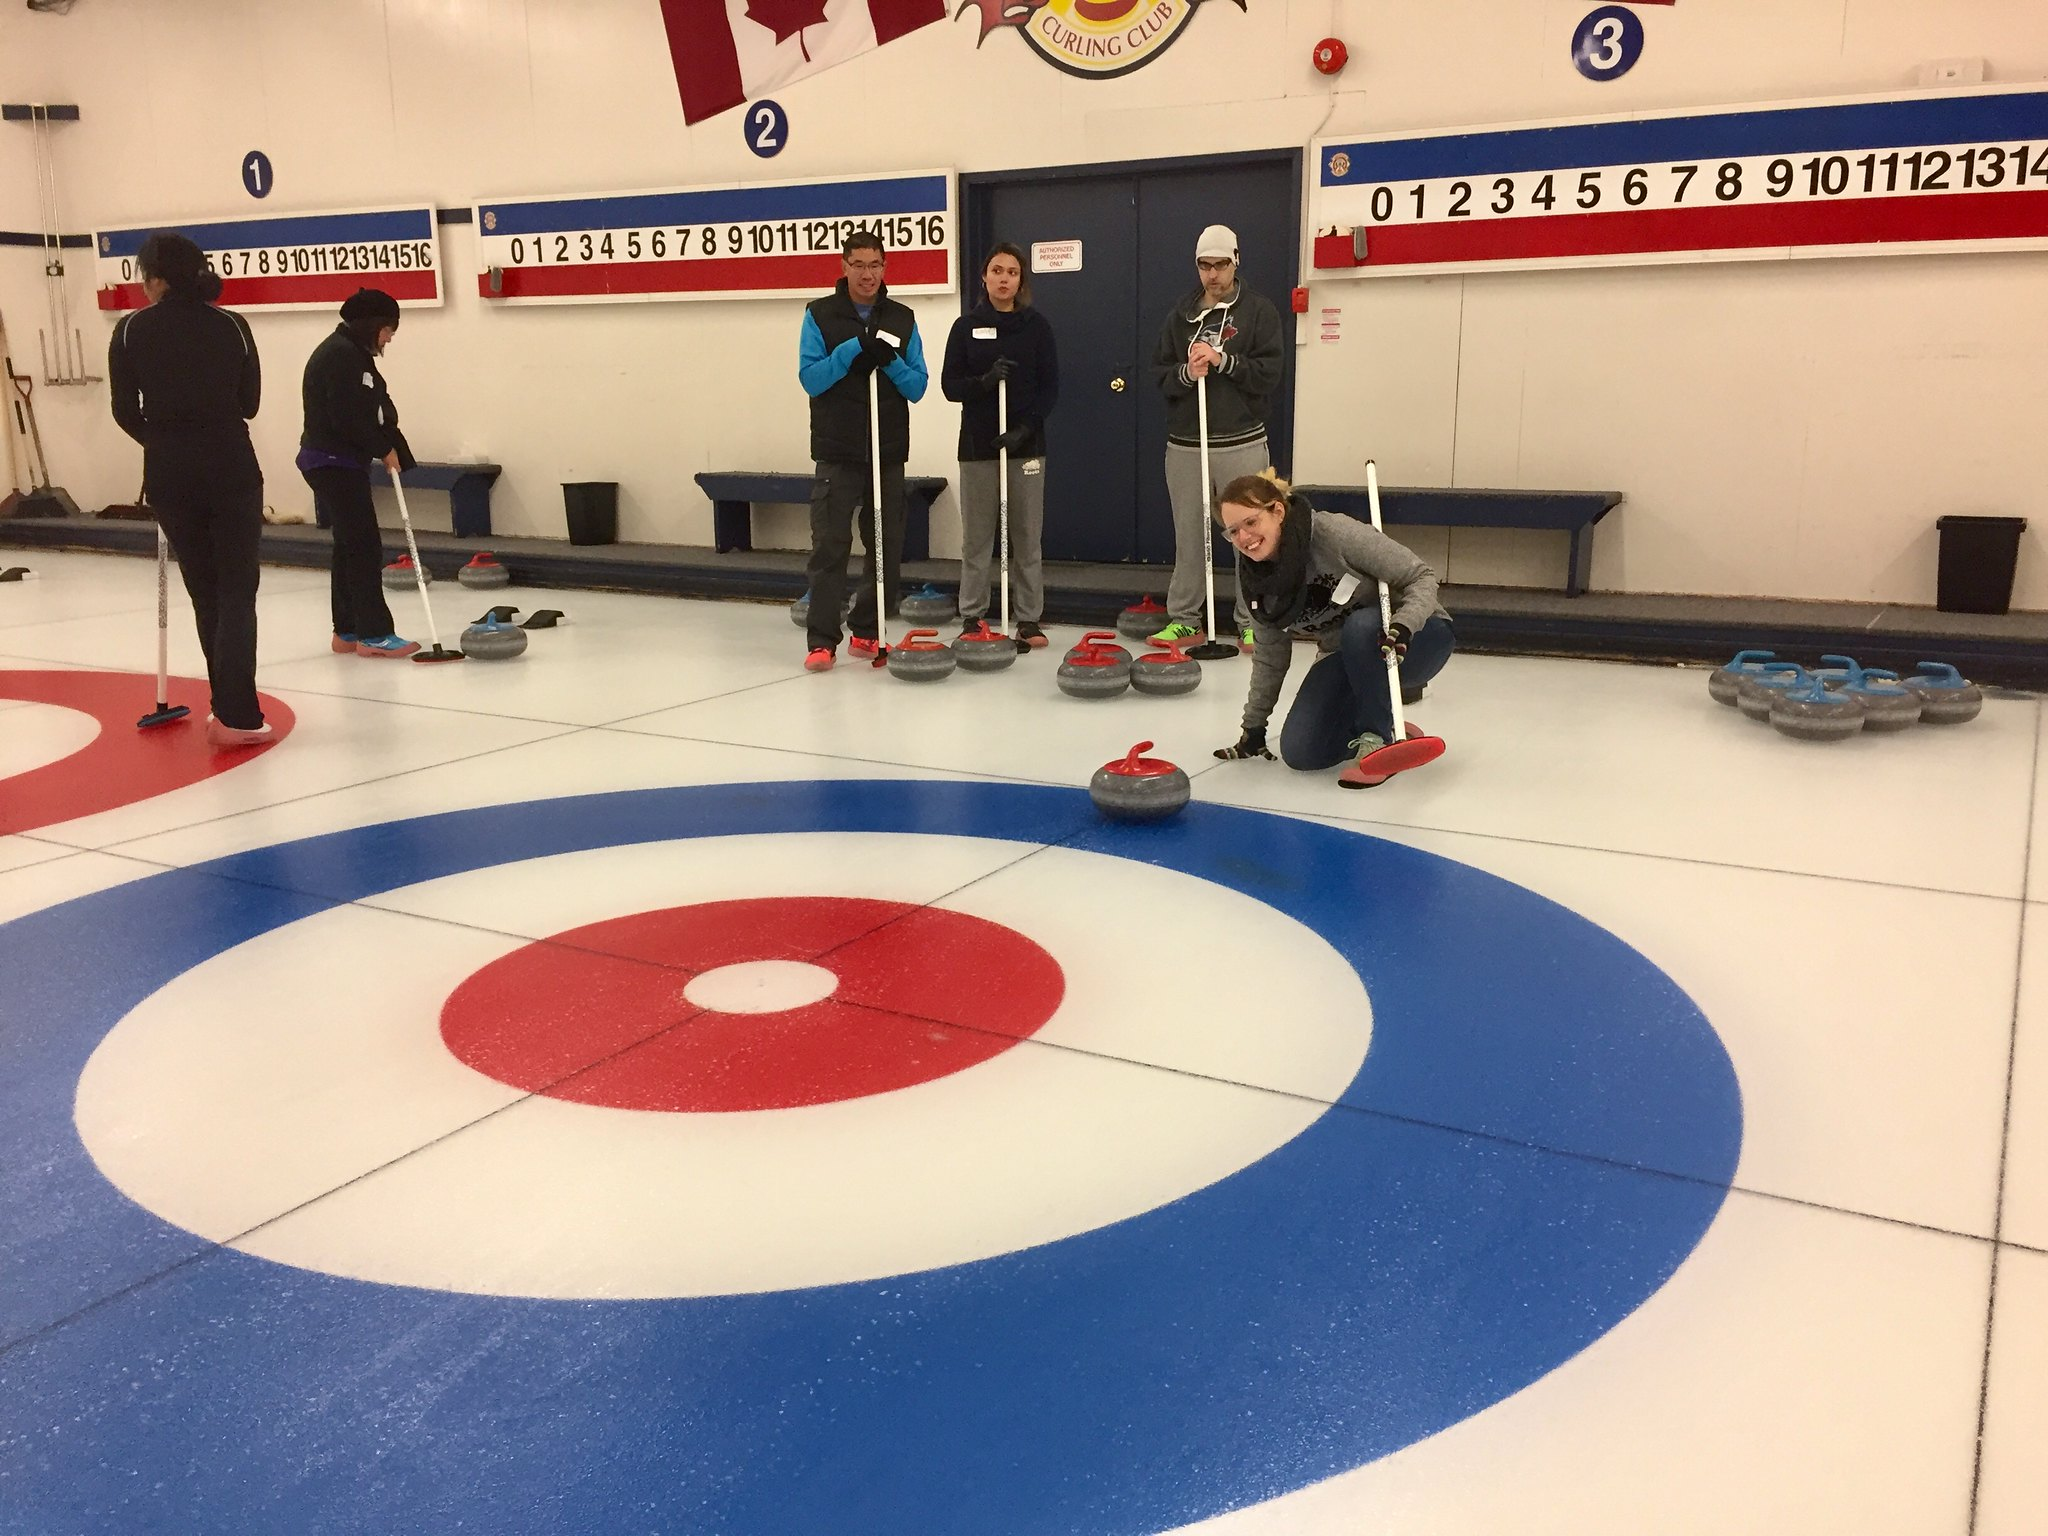 An introduction to curling at Unionville Curling Club